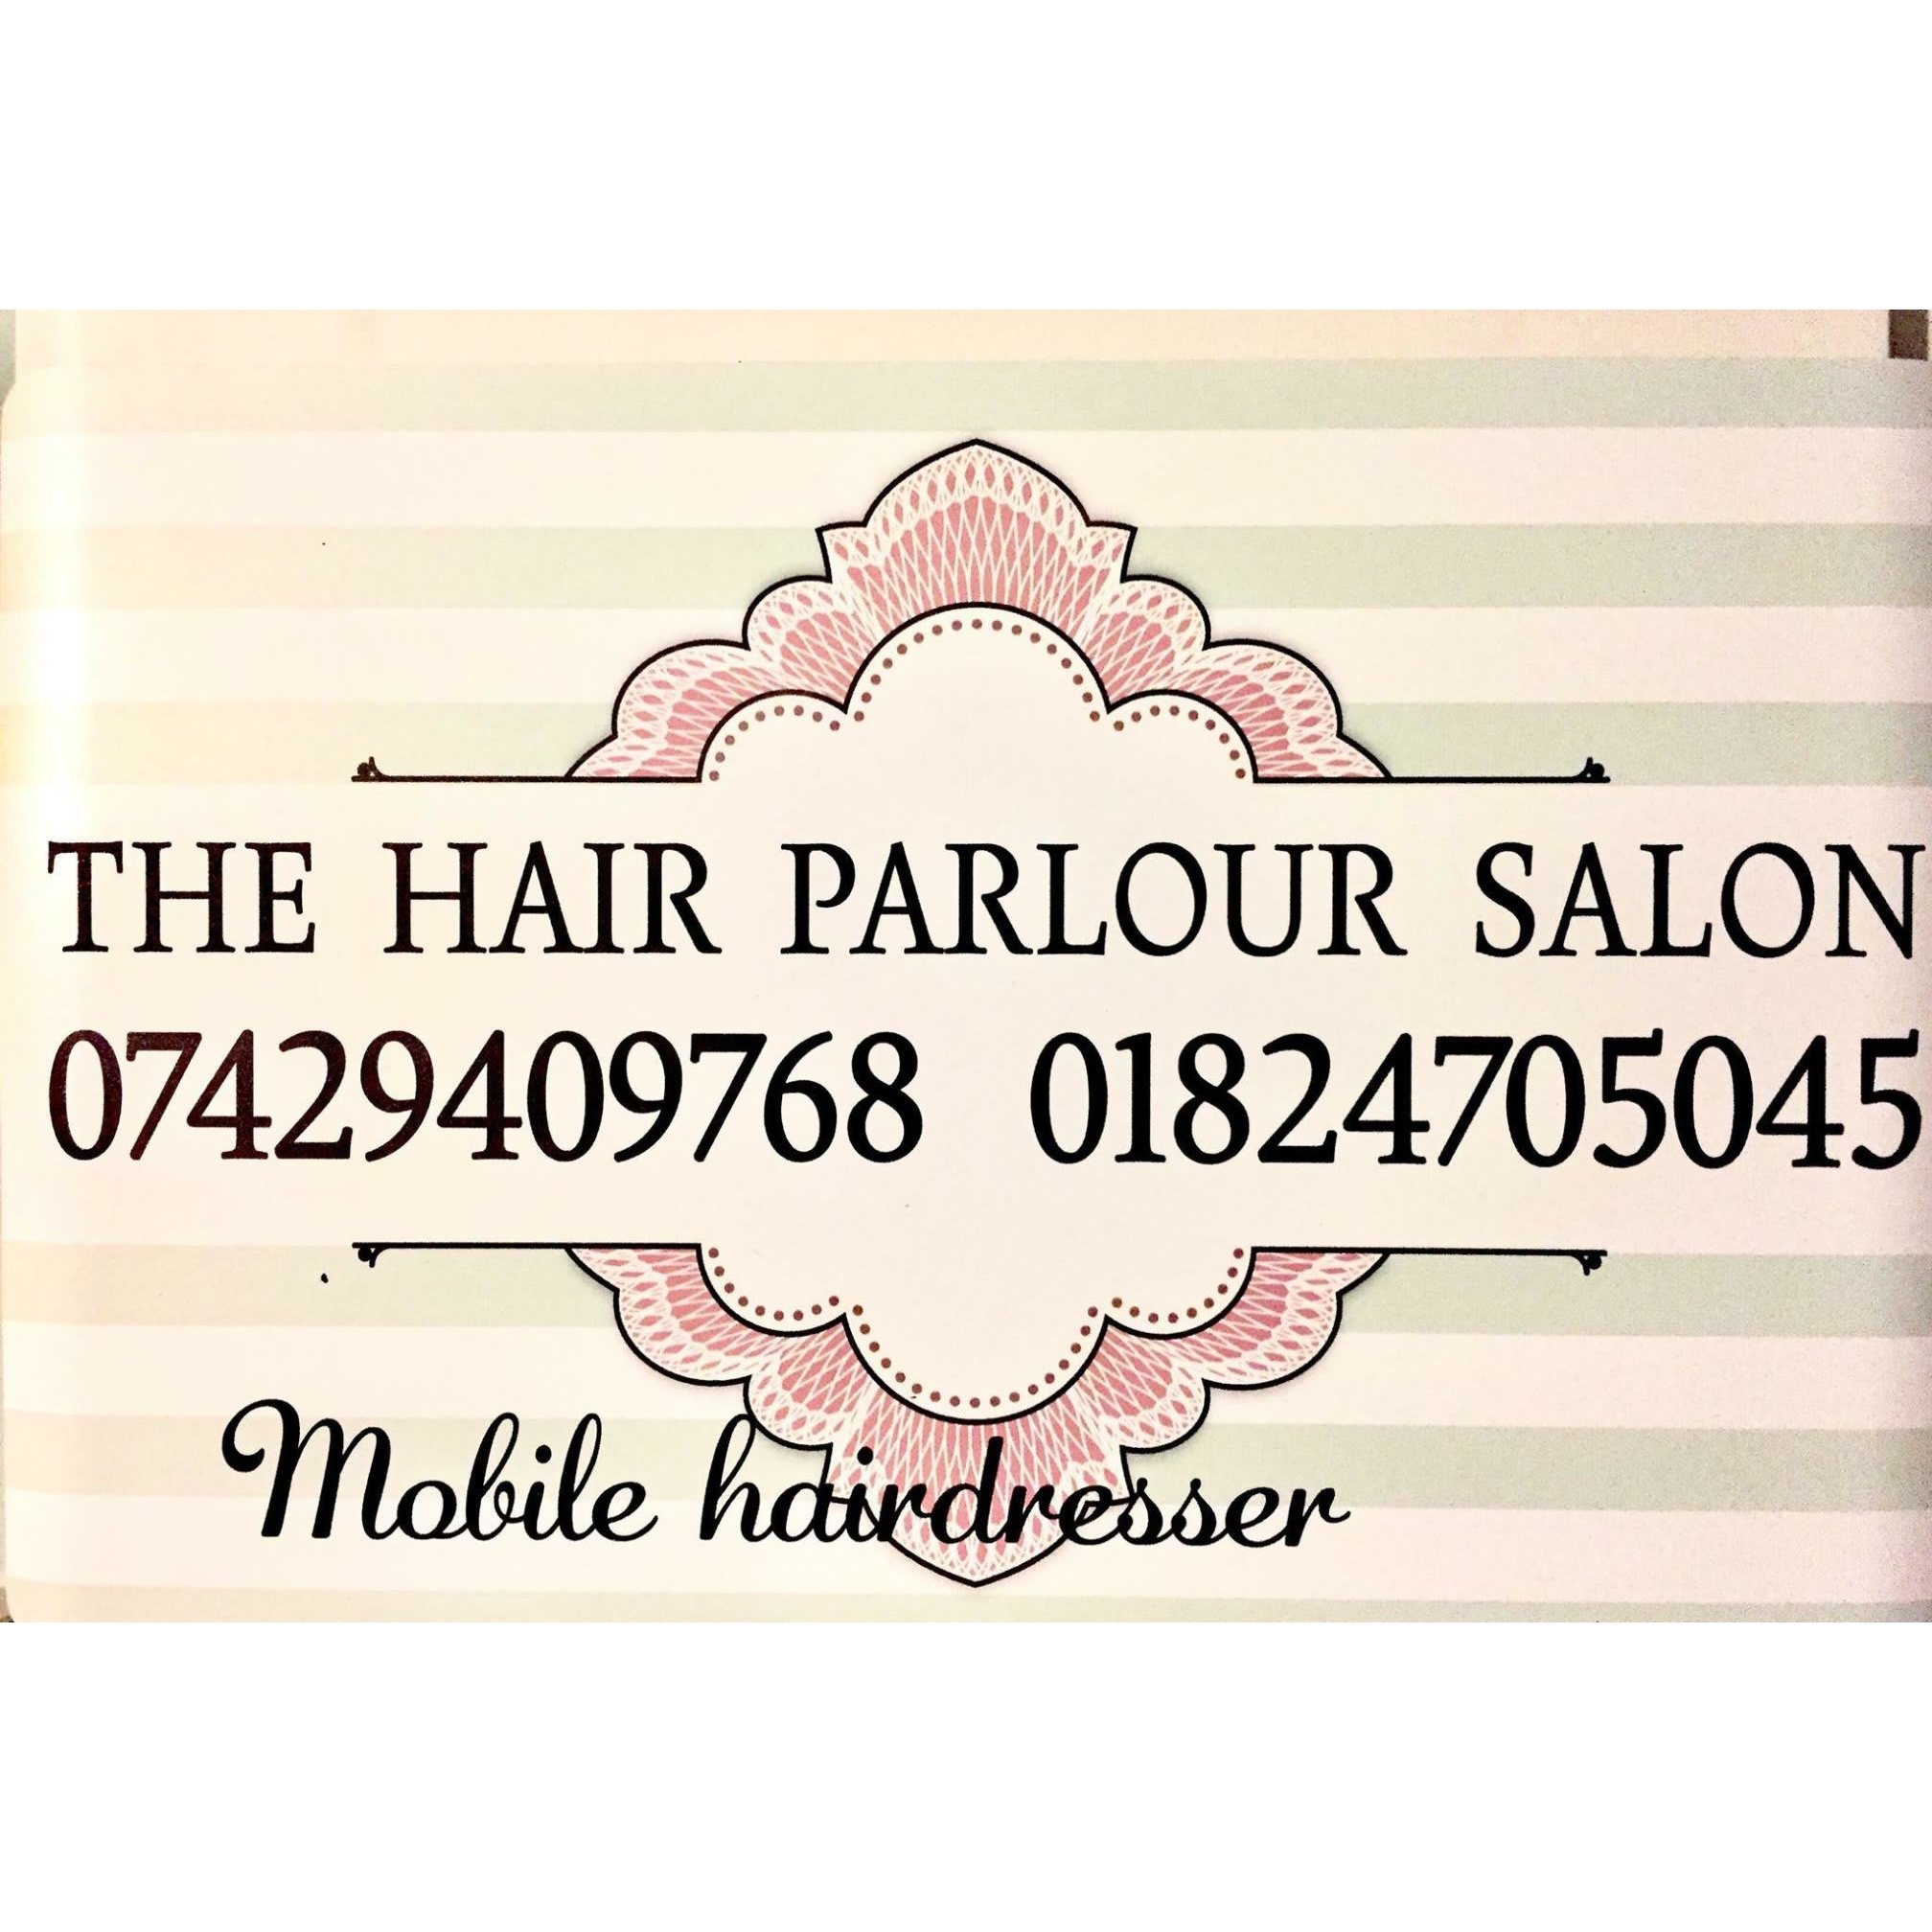 Louisa Edwards Mobile Hairdresser & the Hair Parlor Salon - Ruthin, Clwyd LL15 2AW - 01824 705045 | ShowMeLocal.com